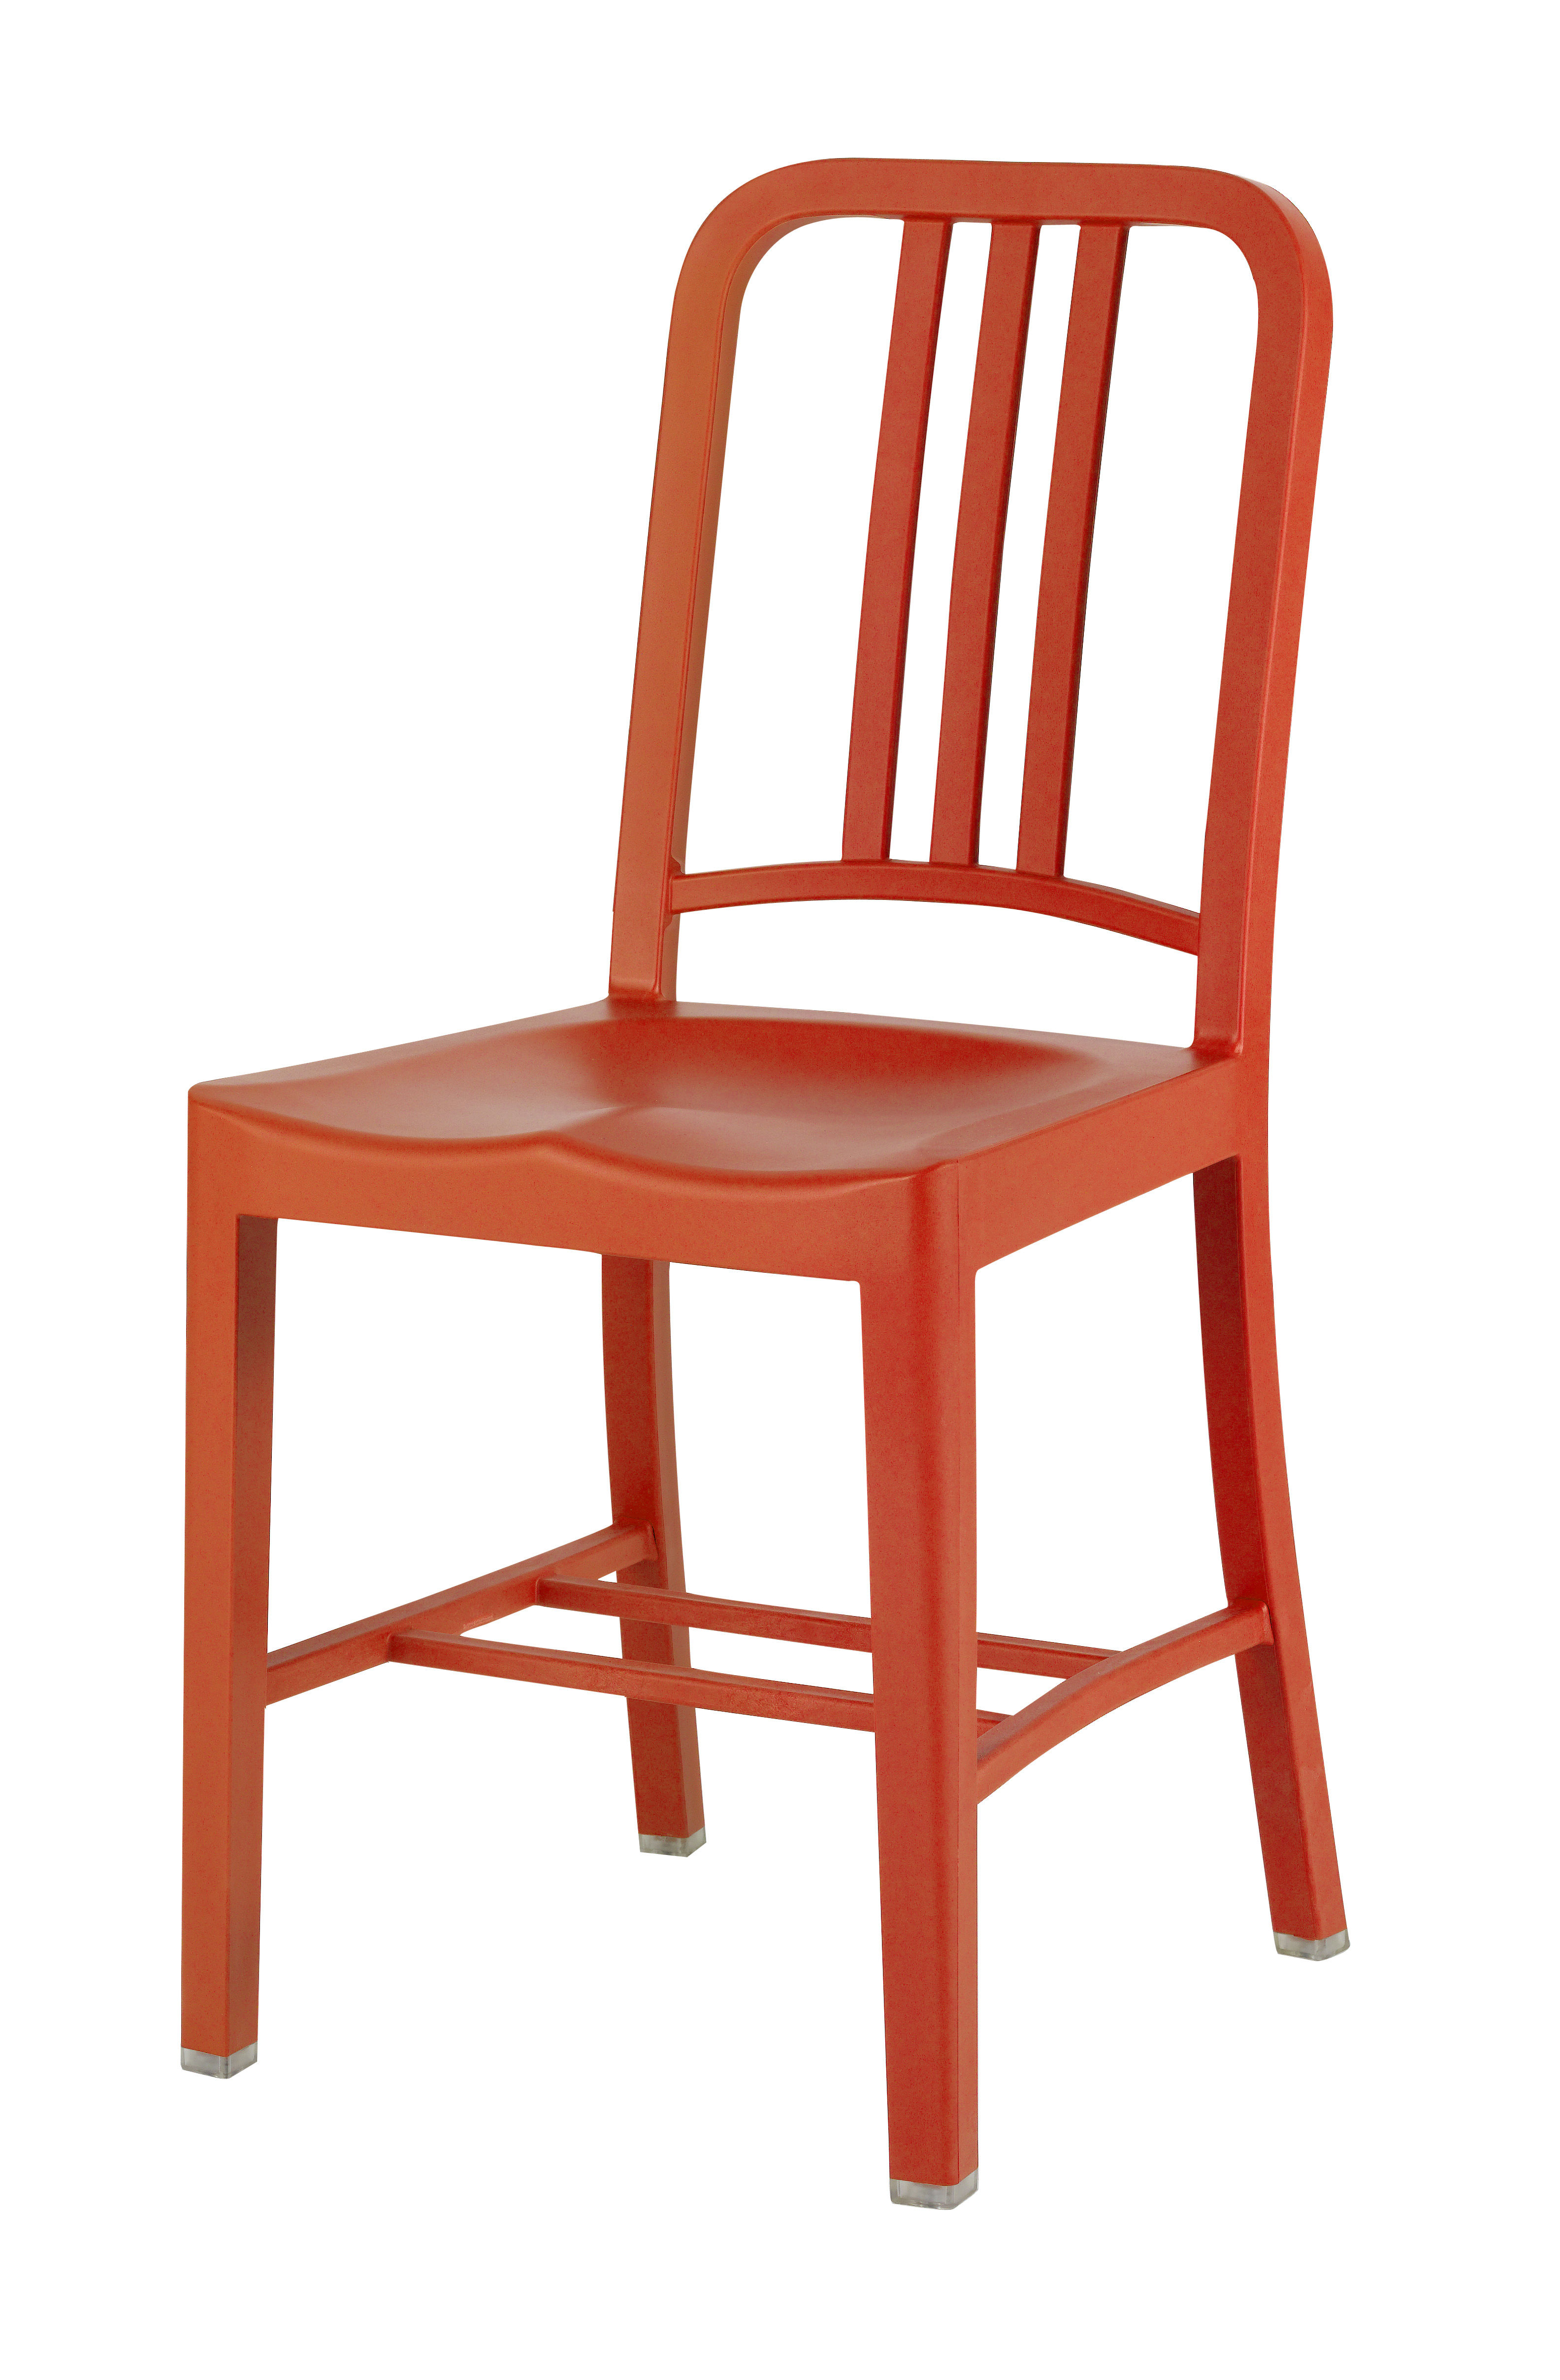 Möbel - Stühle  - 111 Navy chair Indoor Stuhl - Emeco - Orange - Glasfaser